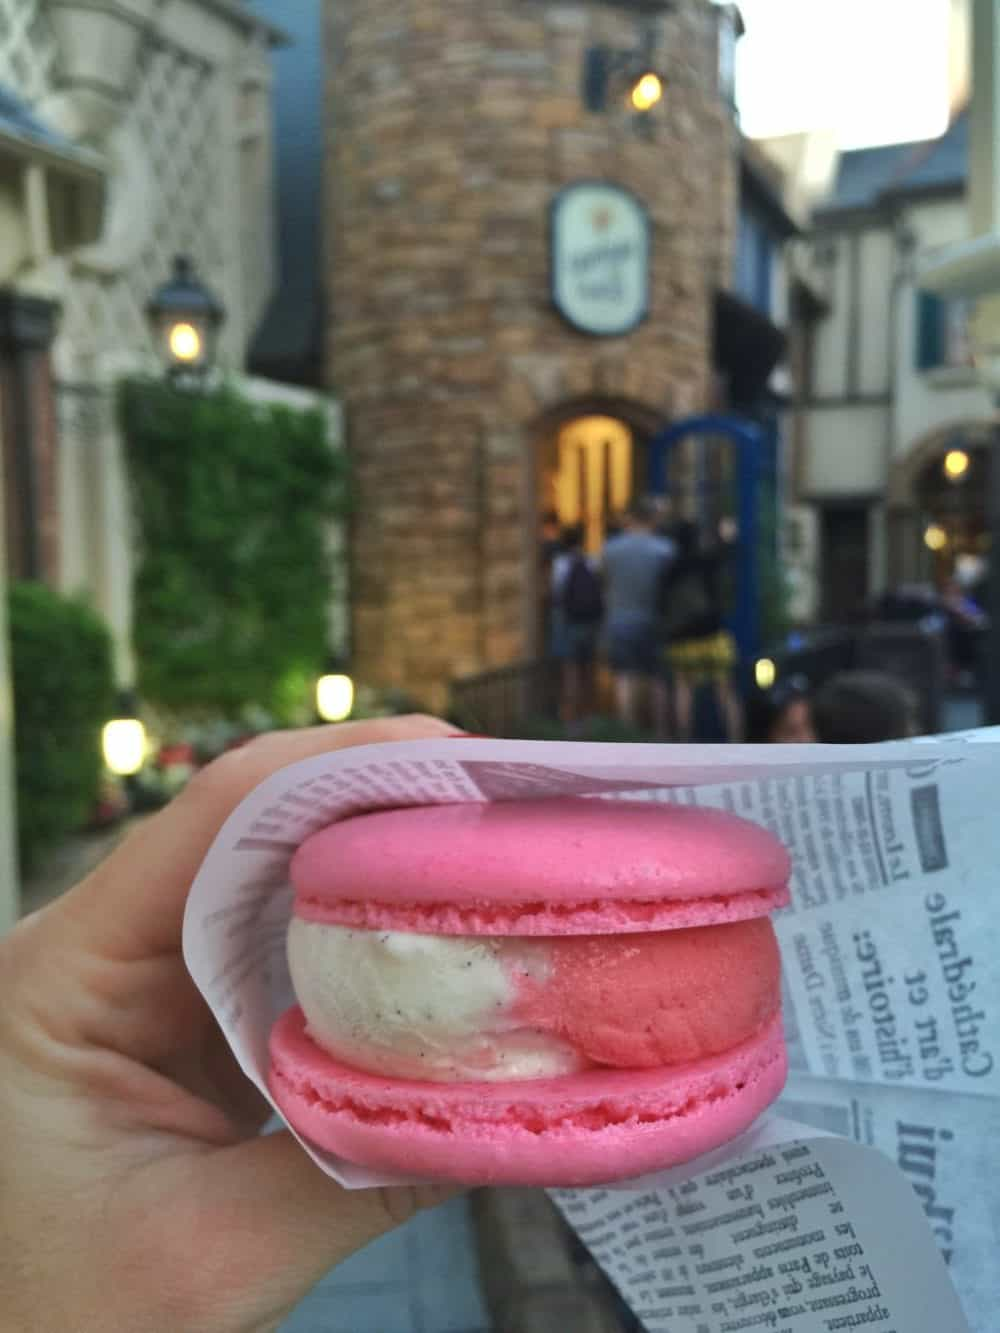 A Pink Macaron Ice Cream Sandwich with Pink and White Ice Cream Inside